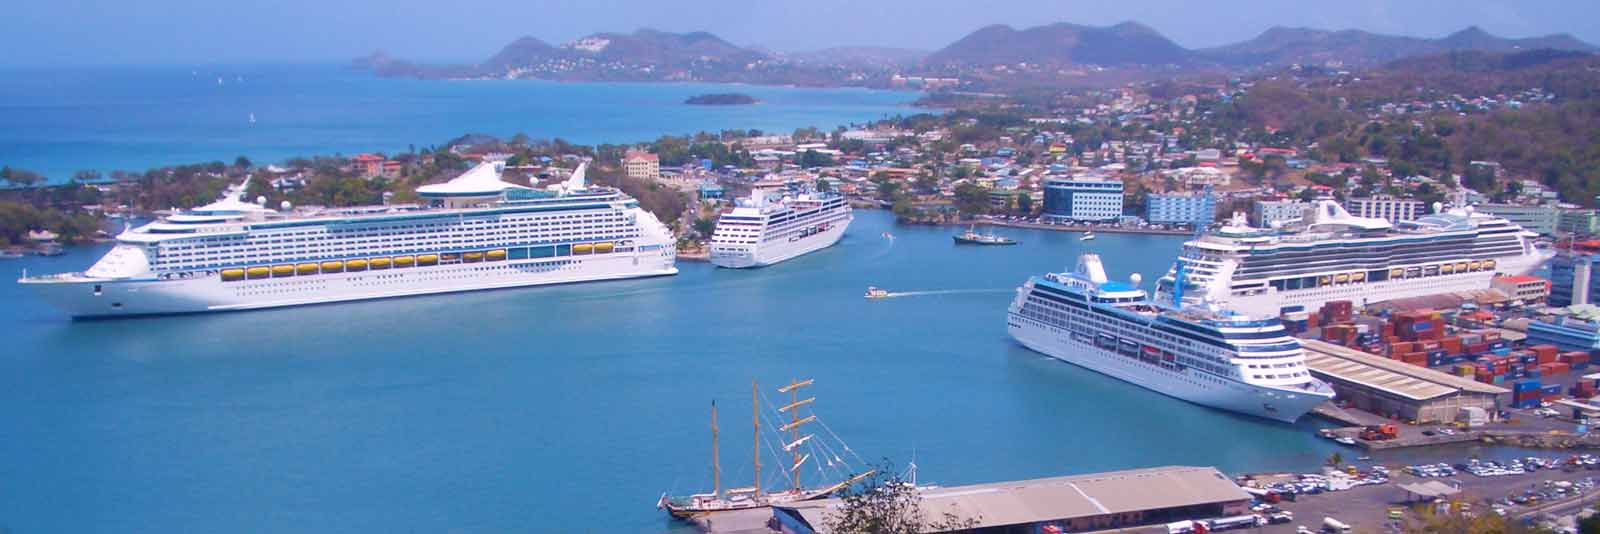 Image result for St Lucia cruise terminal